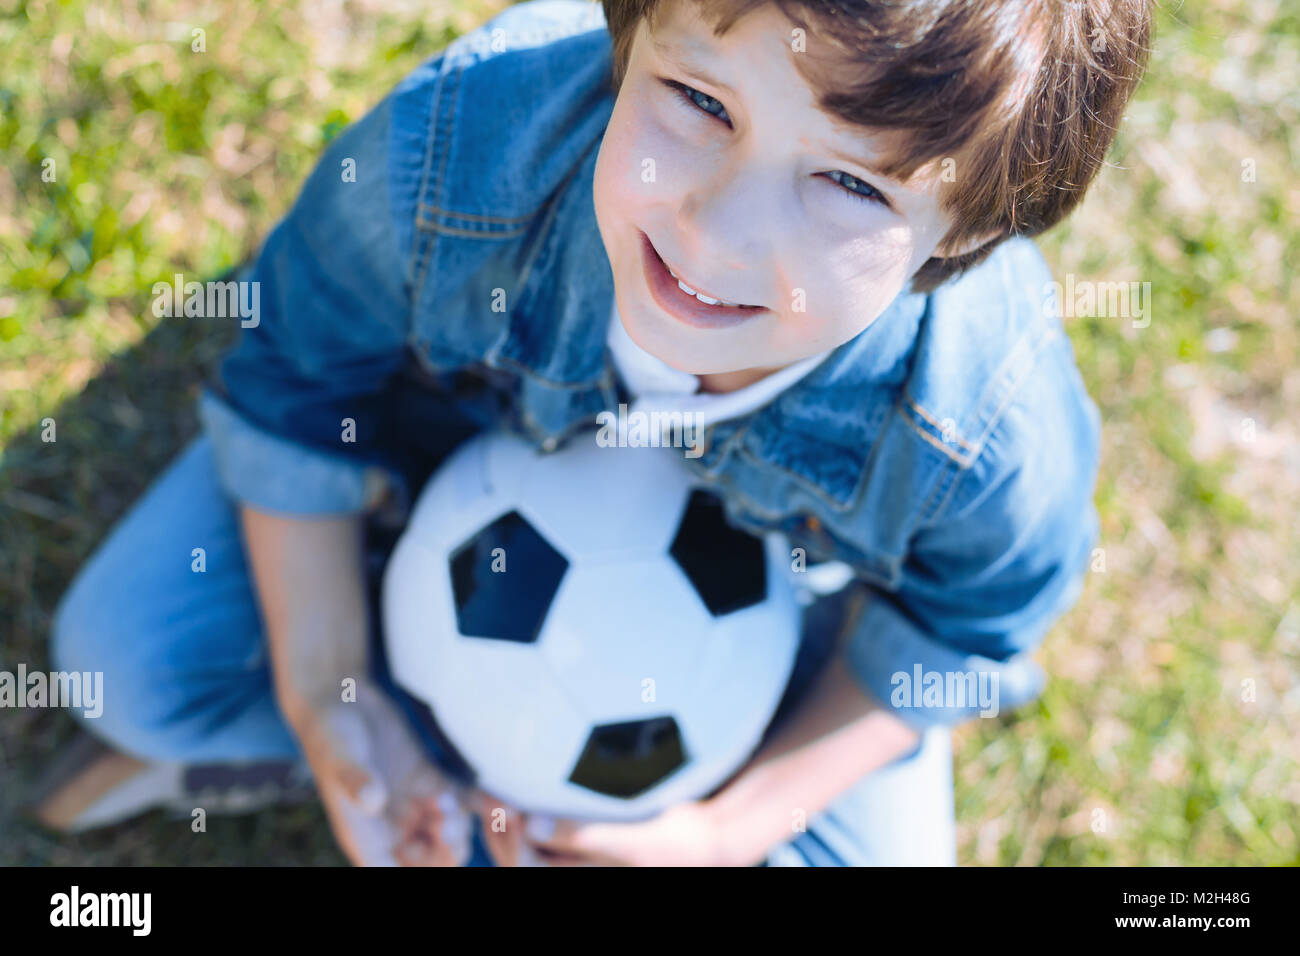 Cute boy with ball smiling after playing soccer - Stock Image